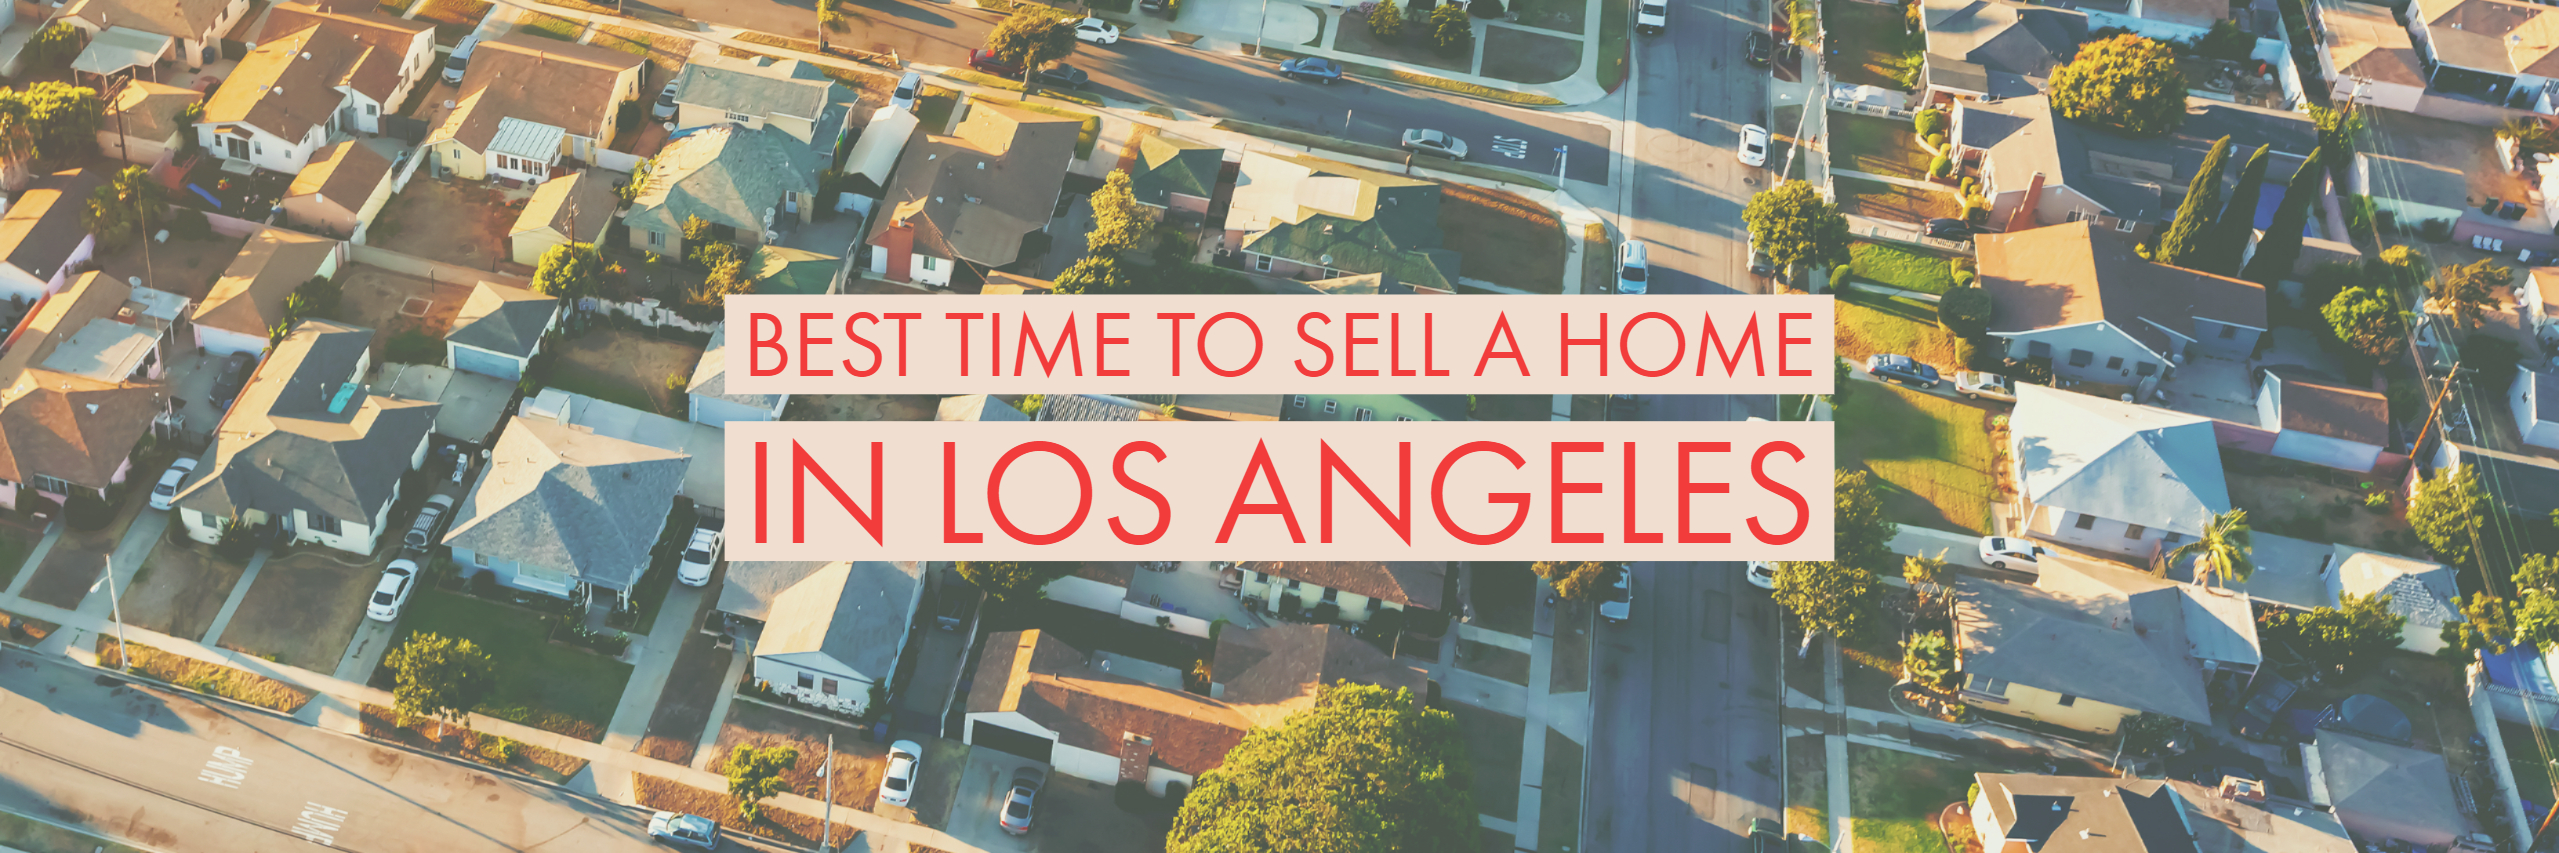 Best Time to Sell a Home in Los Angeles